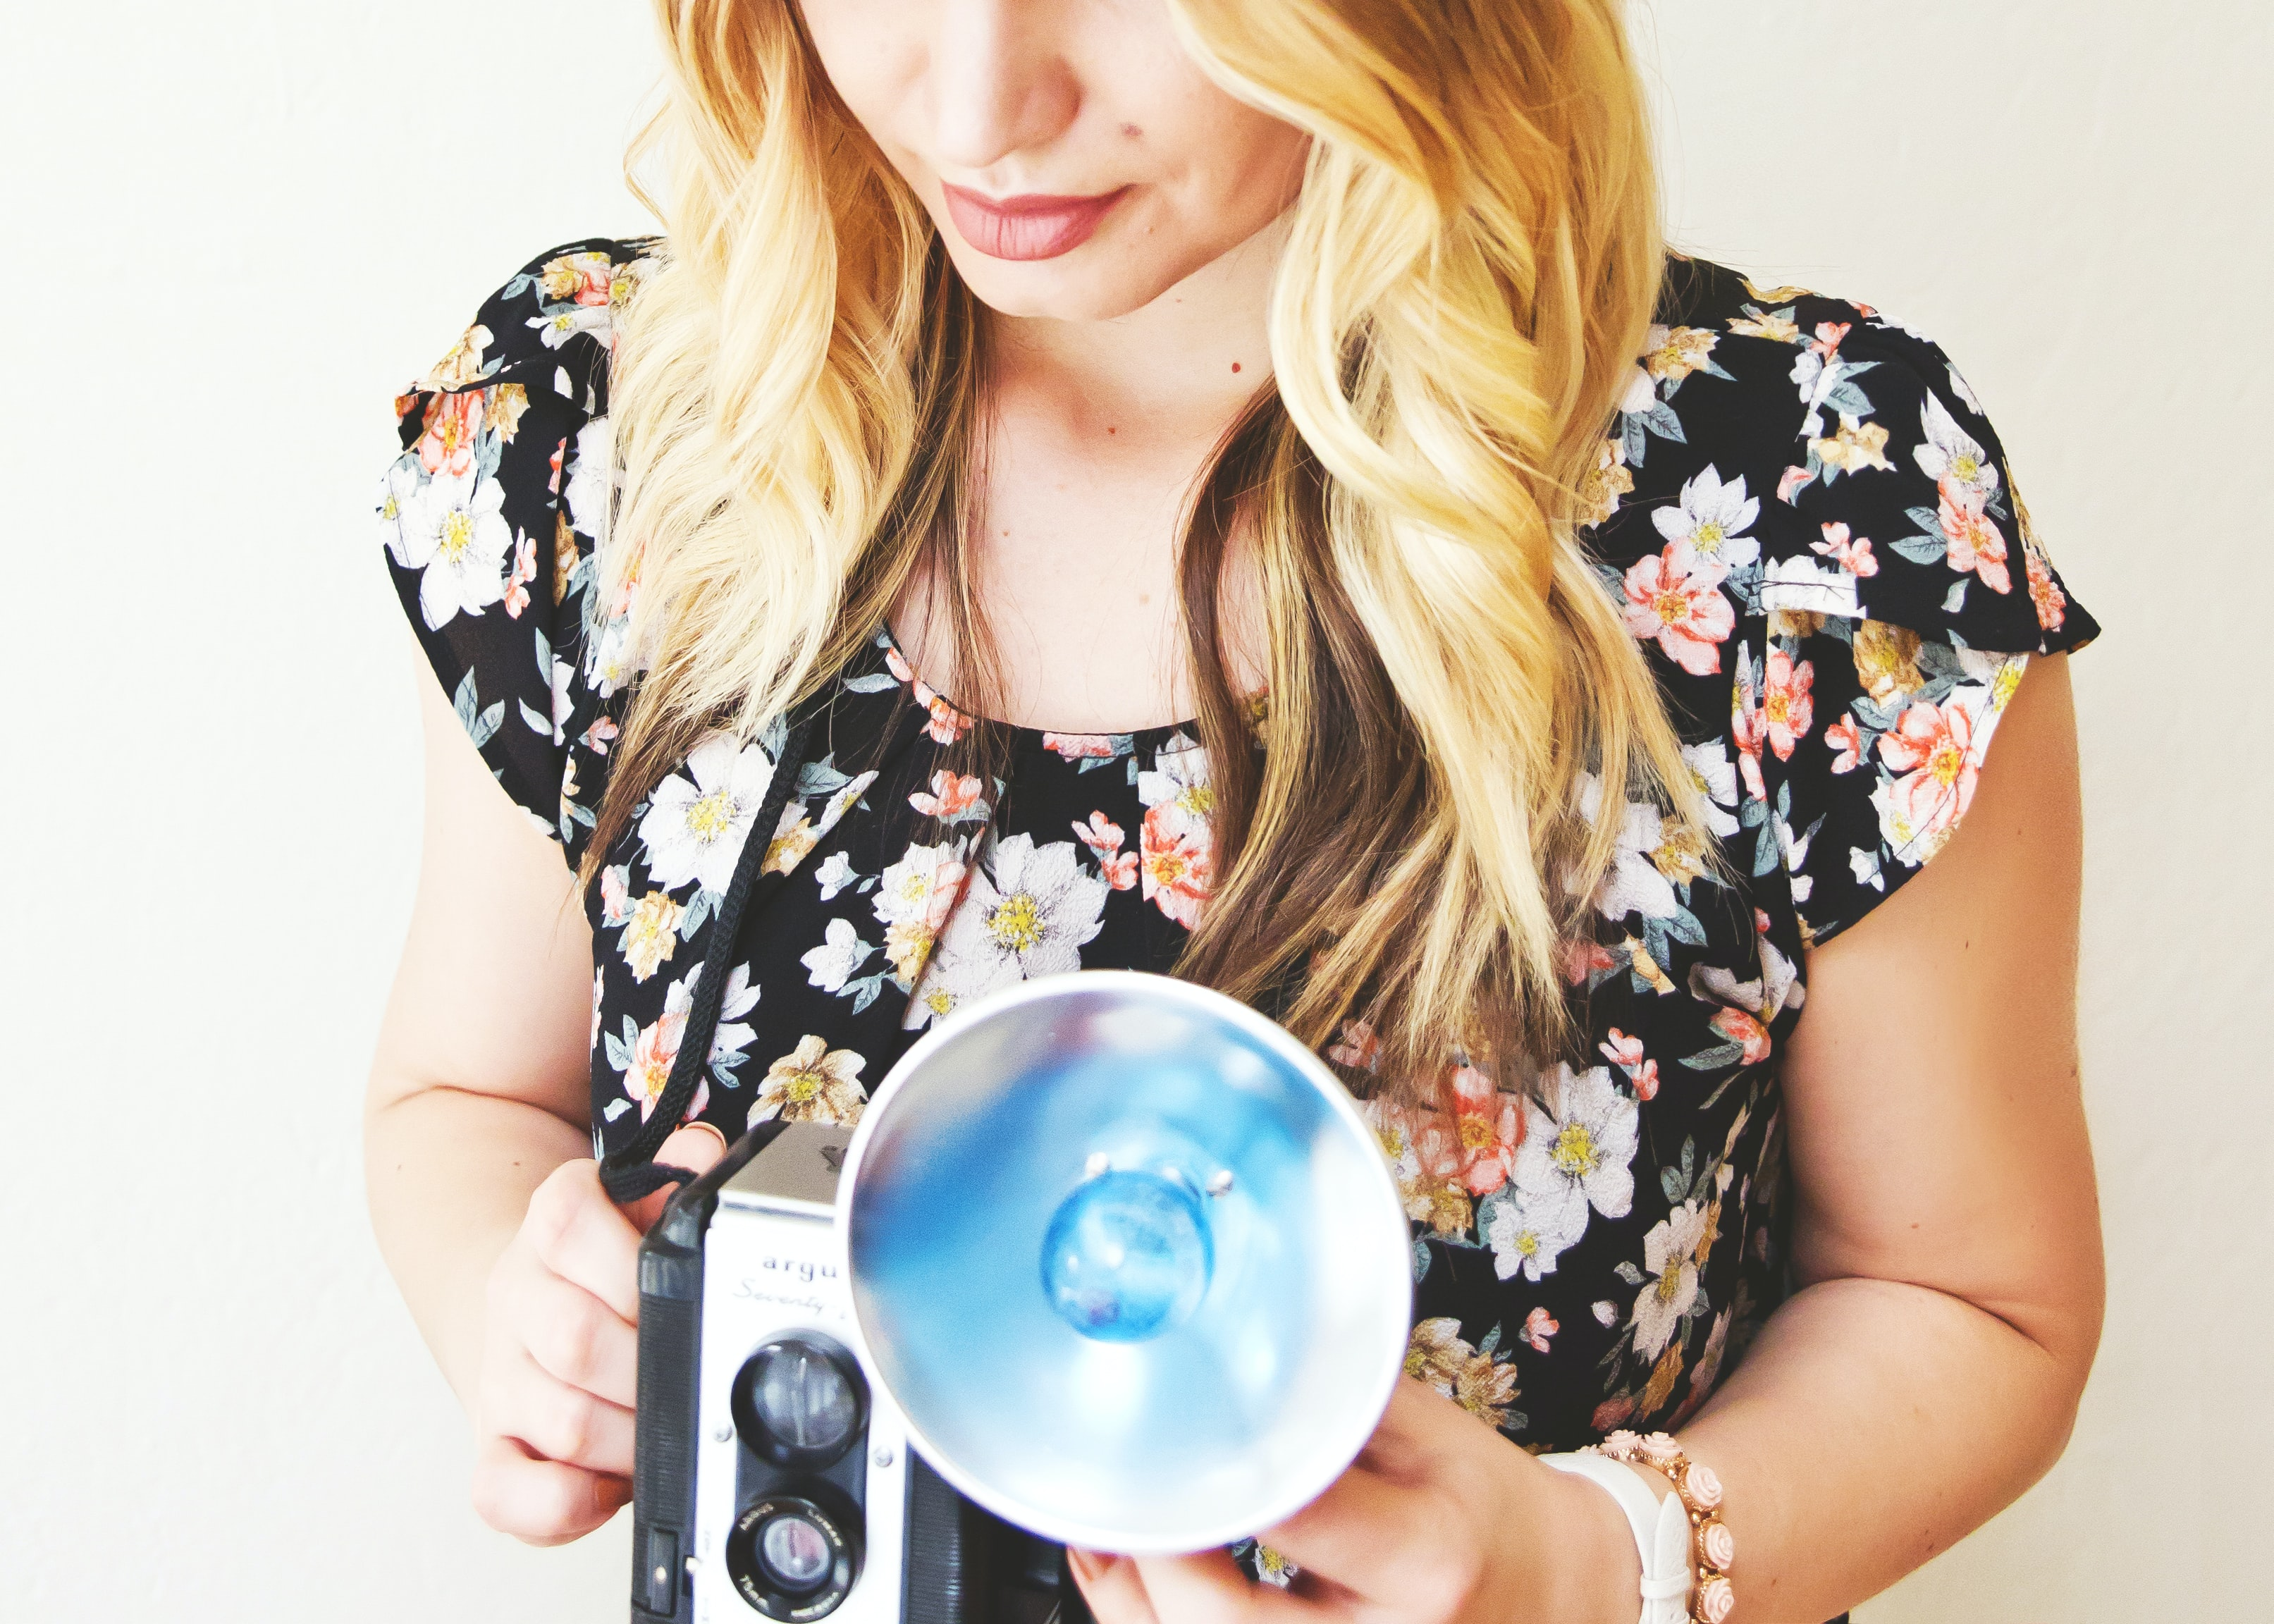 A blonde woman wearing a floral top taking a photo with a vintage camera